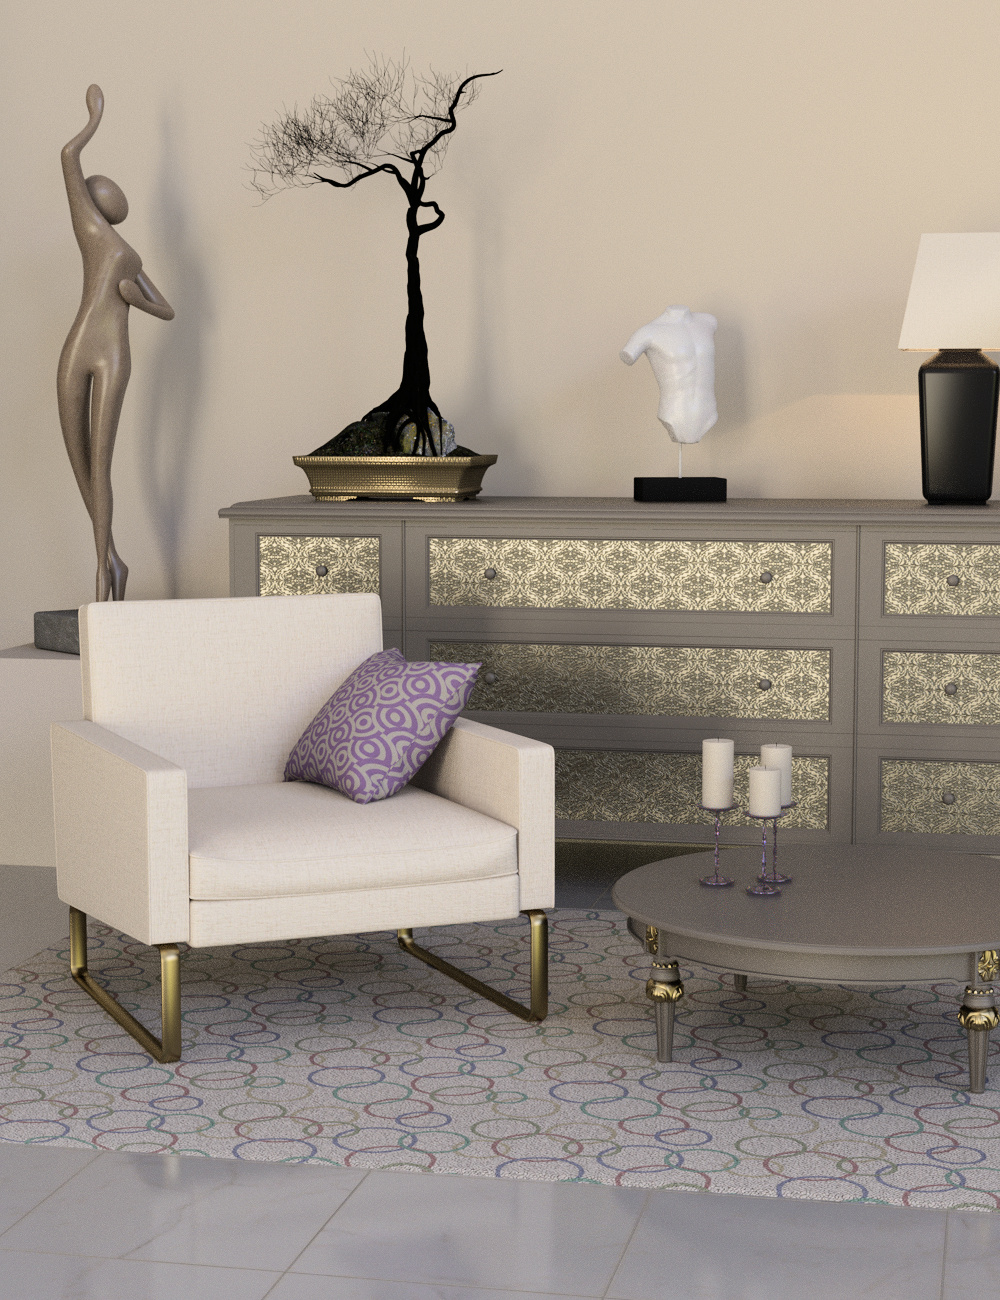 Decorator Kit: Neutral Shader Presets for Iray by: Khory, 3D Models by Daz 3D